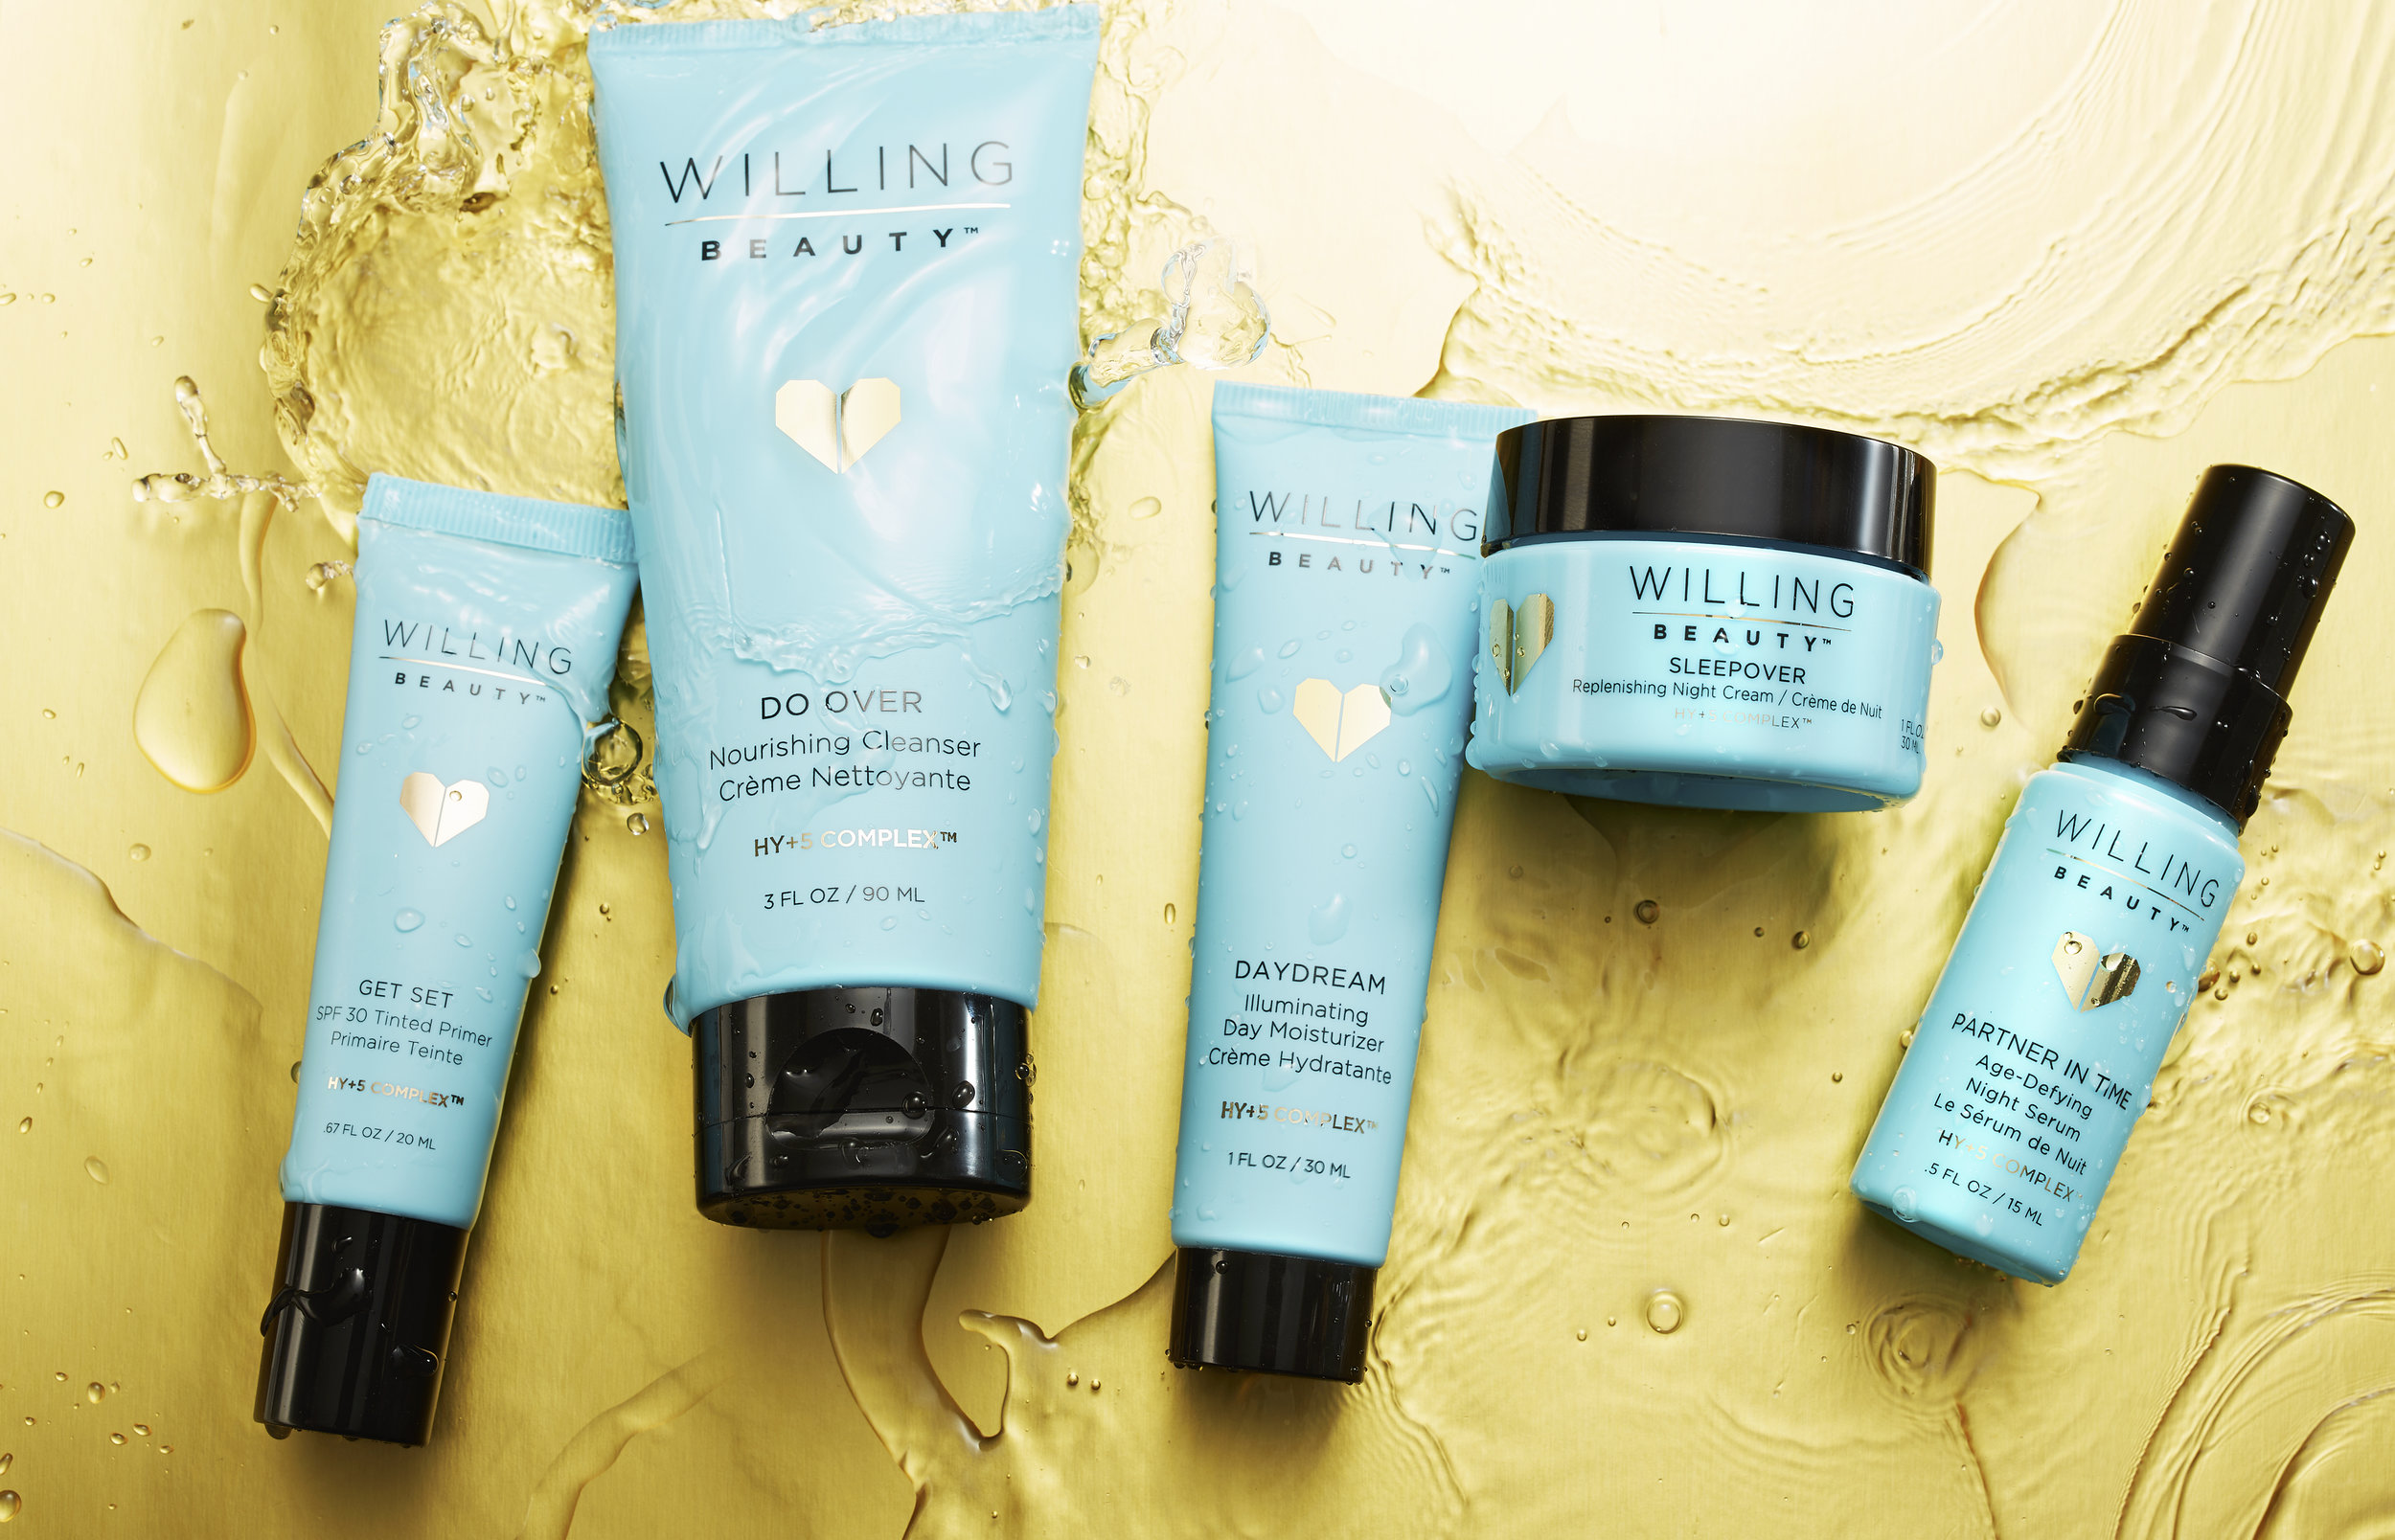 WillingBeauty_CollectionOnGold.jpg